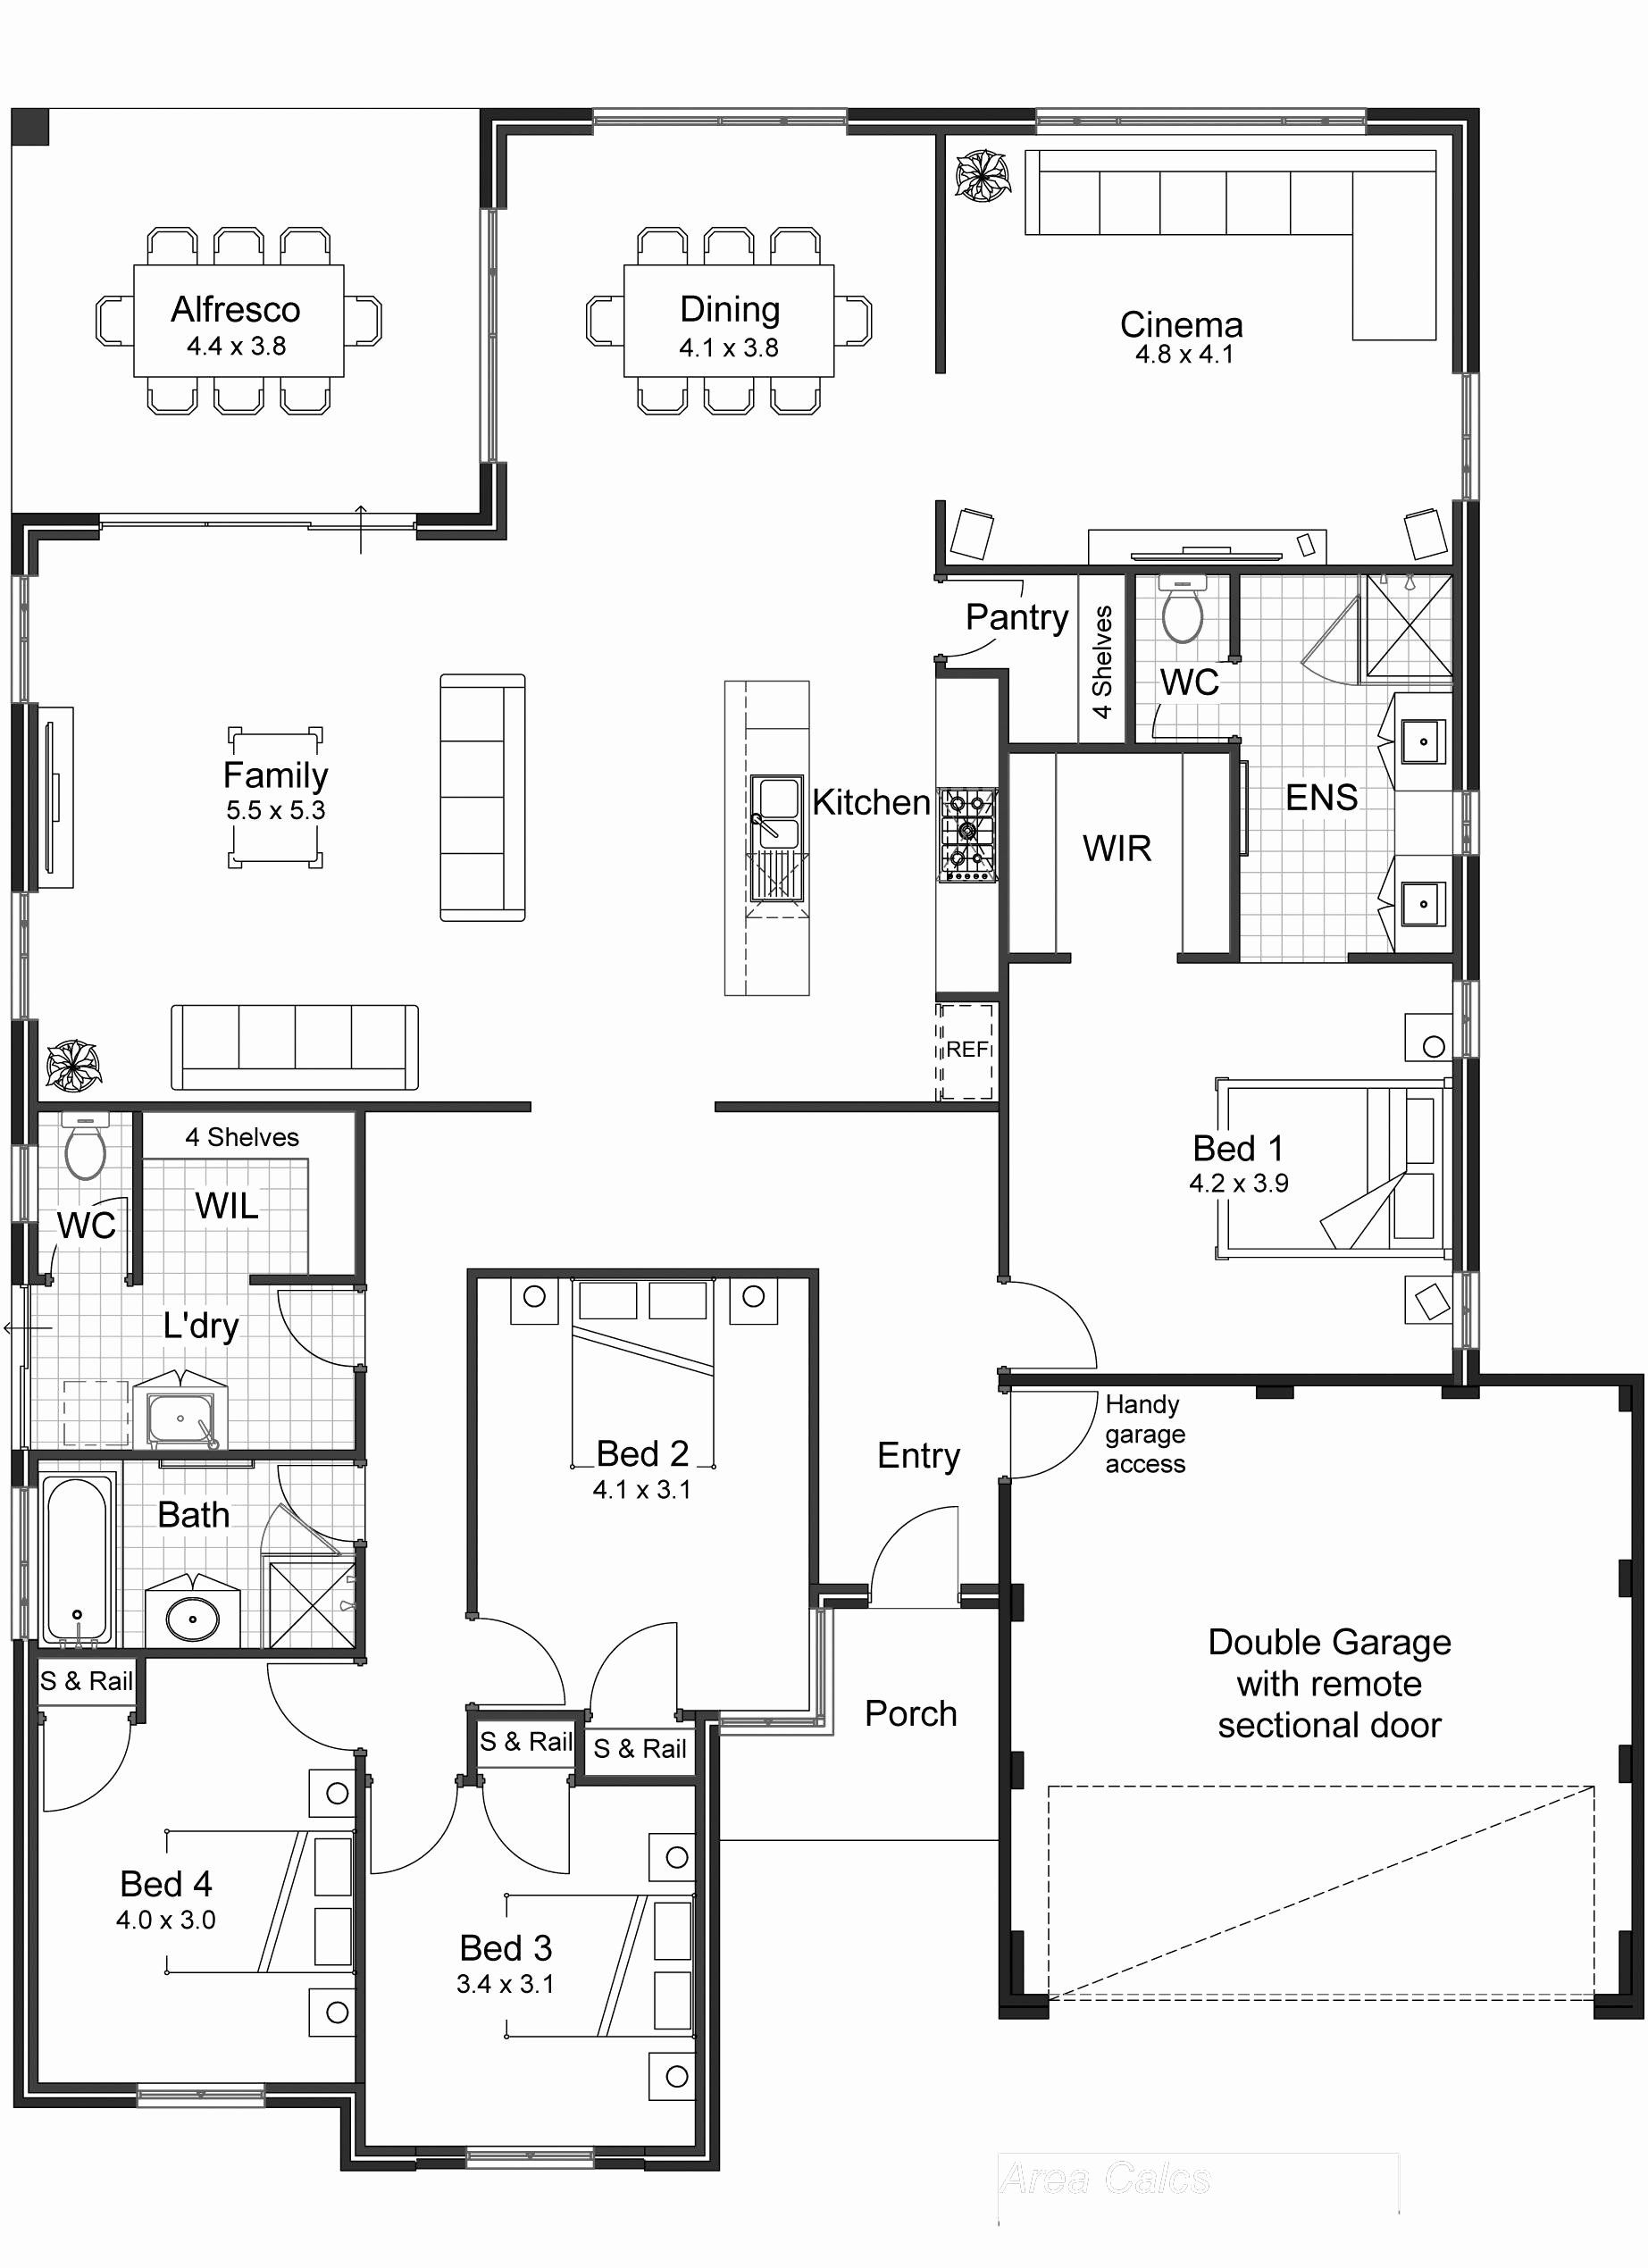 Eight Bedroom House Plans Awesome Best 17 Open Floor Plan Layout House Plans Open Floor House Plans Unique House Plans Open House Plans